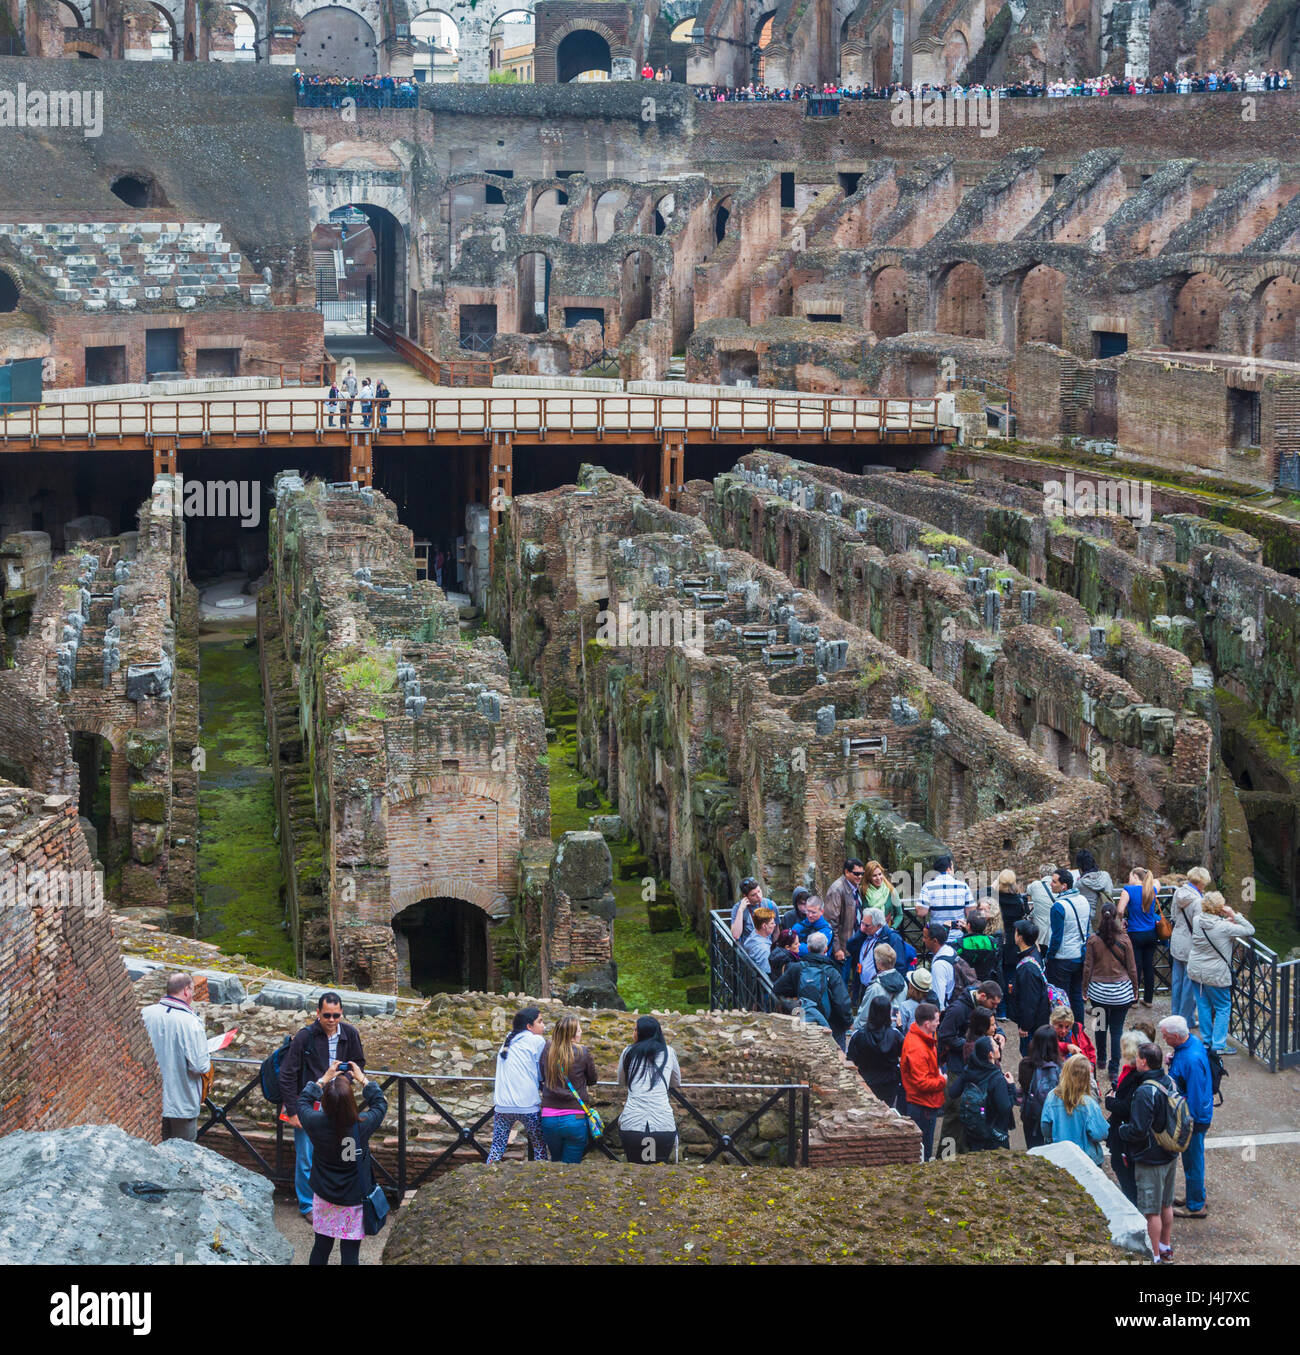 Rome, Italy.  Interior of the Colosseum. The historic centre of Rome is a UNESCO World Heritage Site. - Stock Image